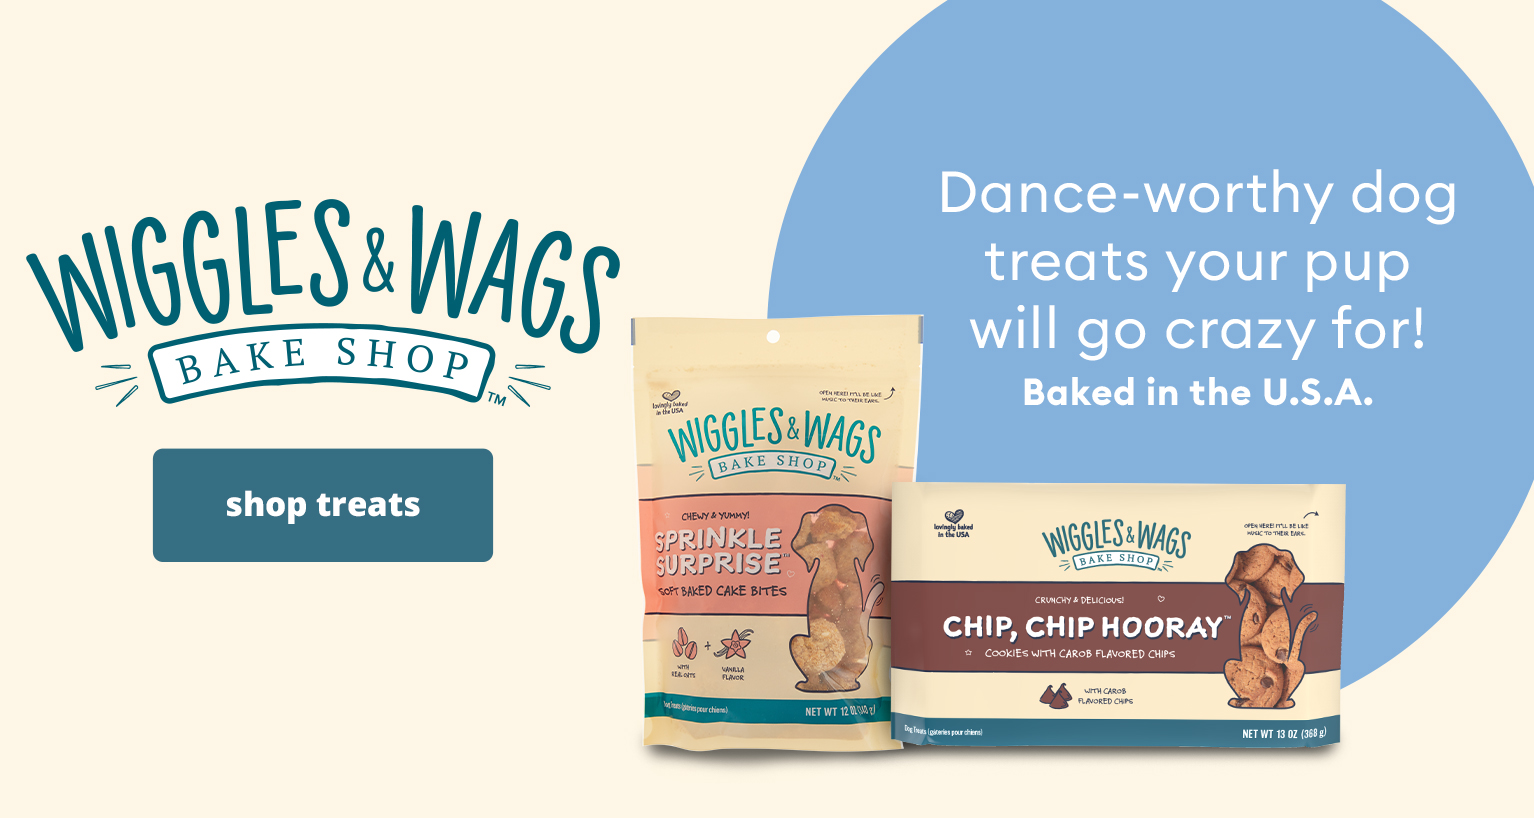 (Wiggles & Wags Bake Shop Logo) Dance-worthy dog treats your pup will go crazy for! Baked in the U.S.A. shop treats >